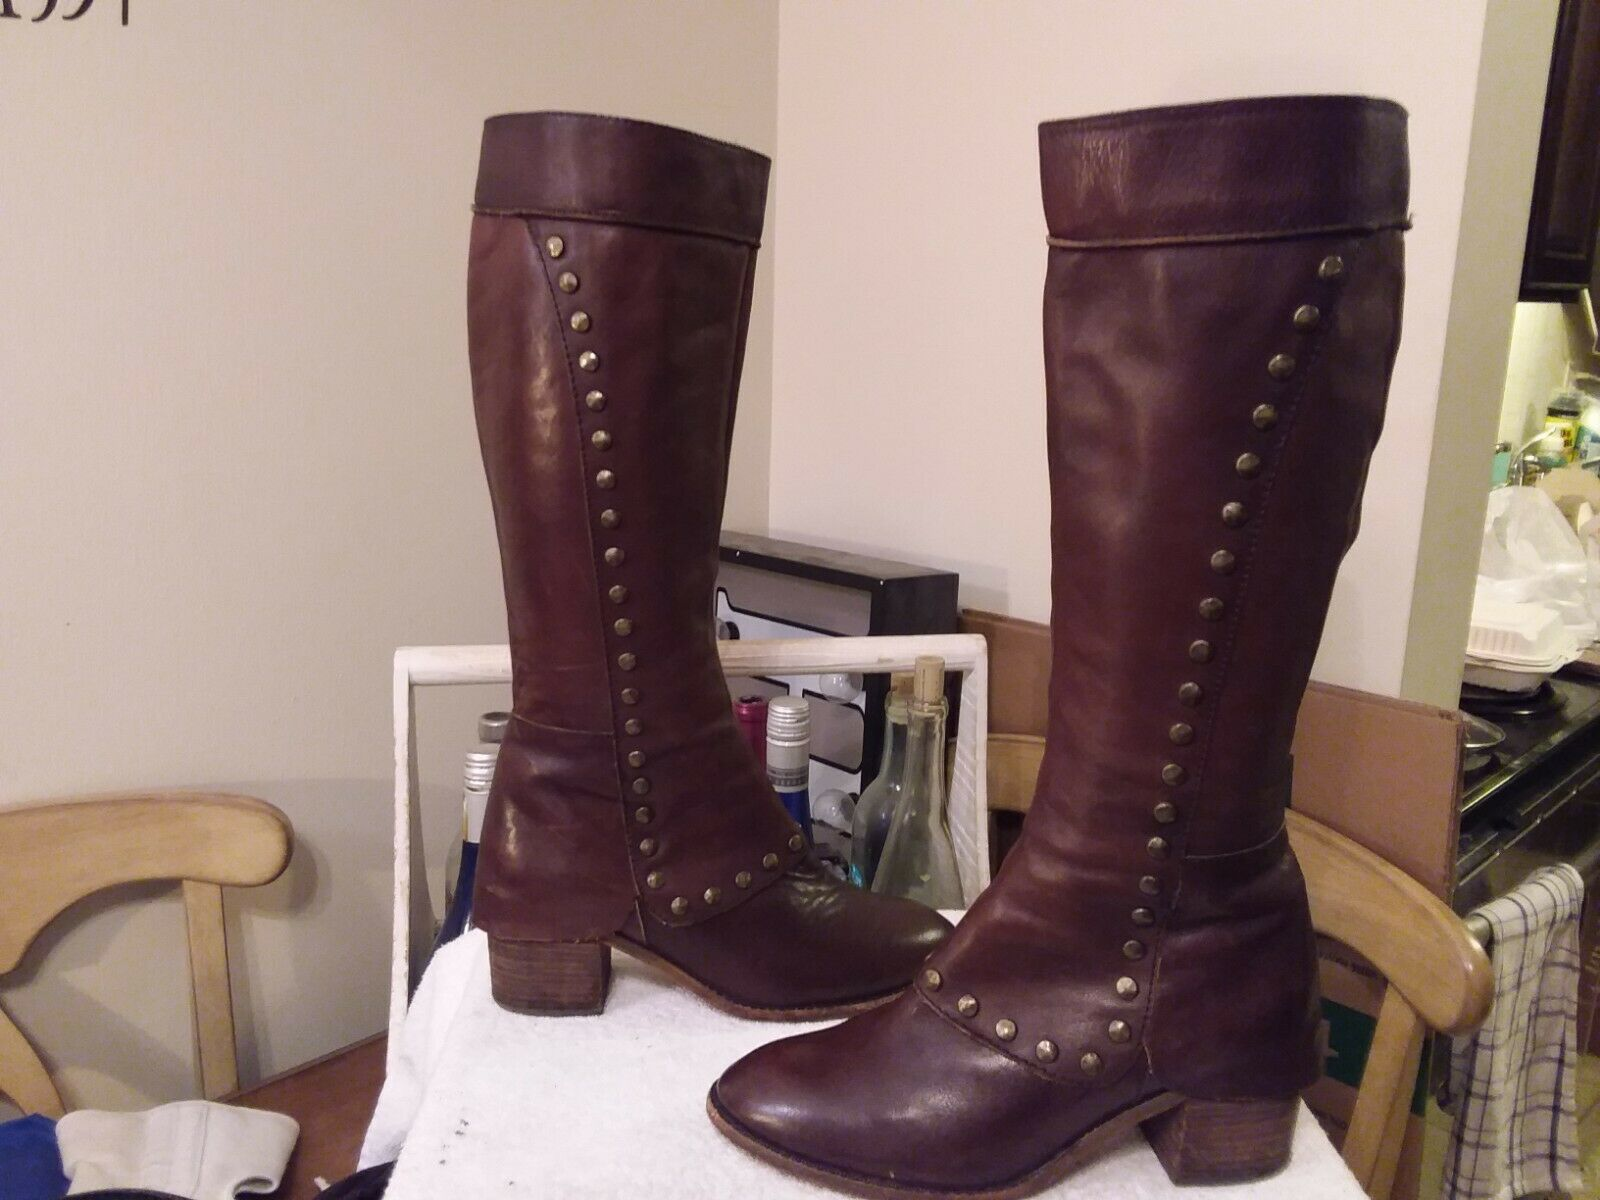 KORK-EASE LESLIE KNEE HIGH BOOTS BROWN LEATHER STUDDED 8.5B SPAT STYLE NICE